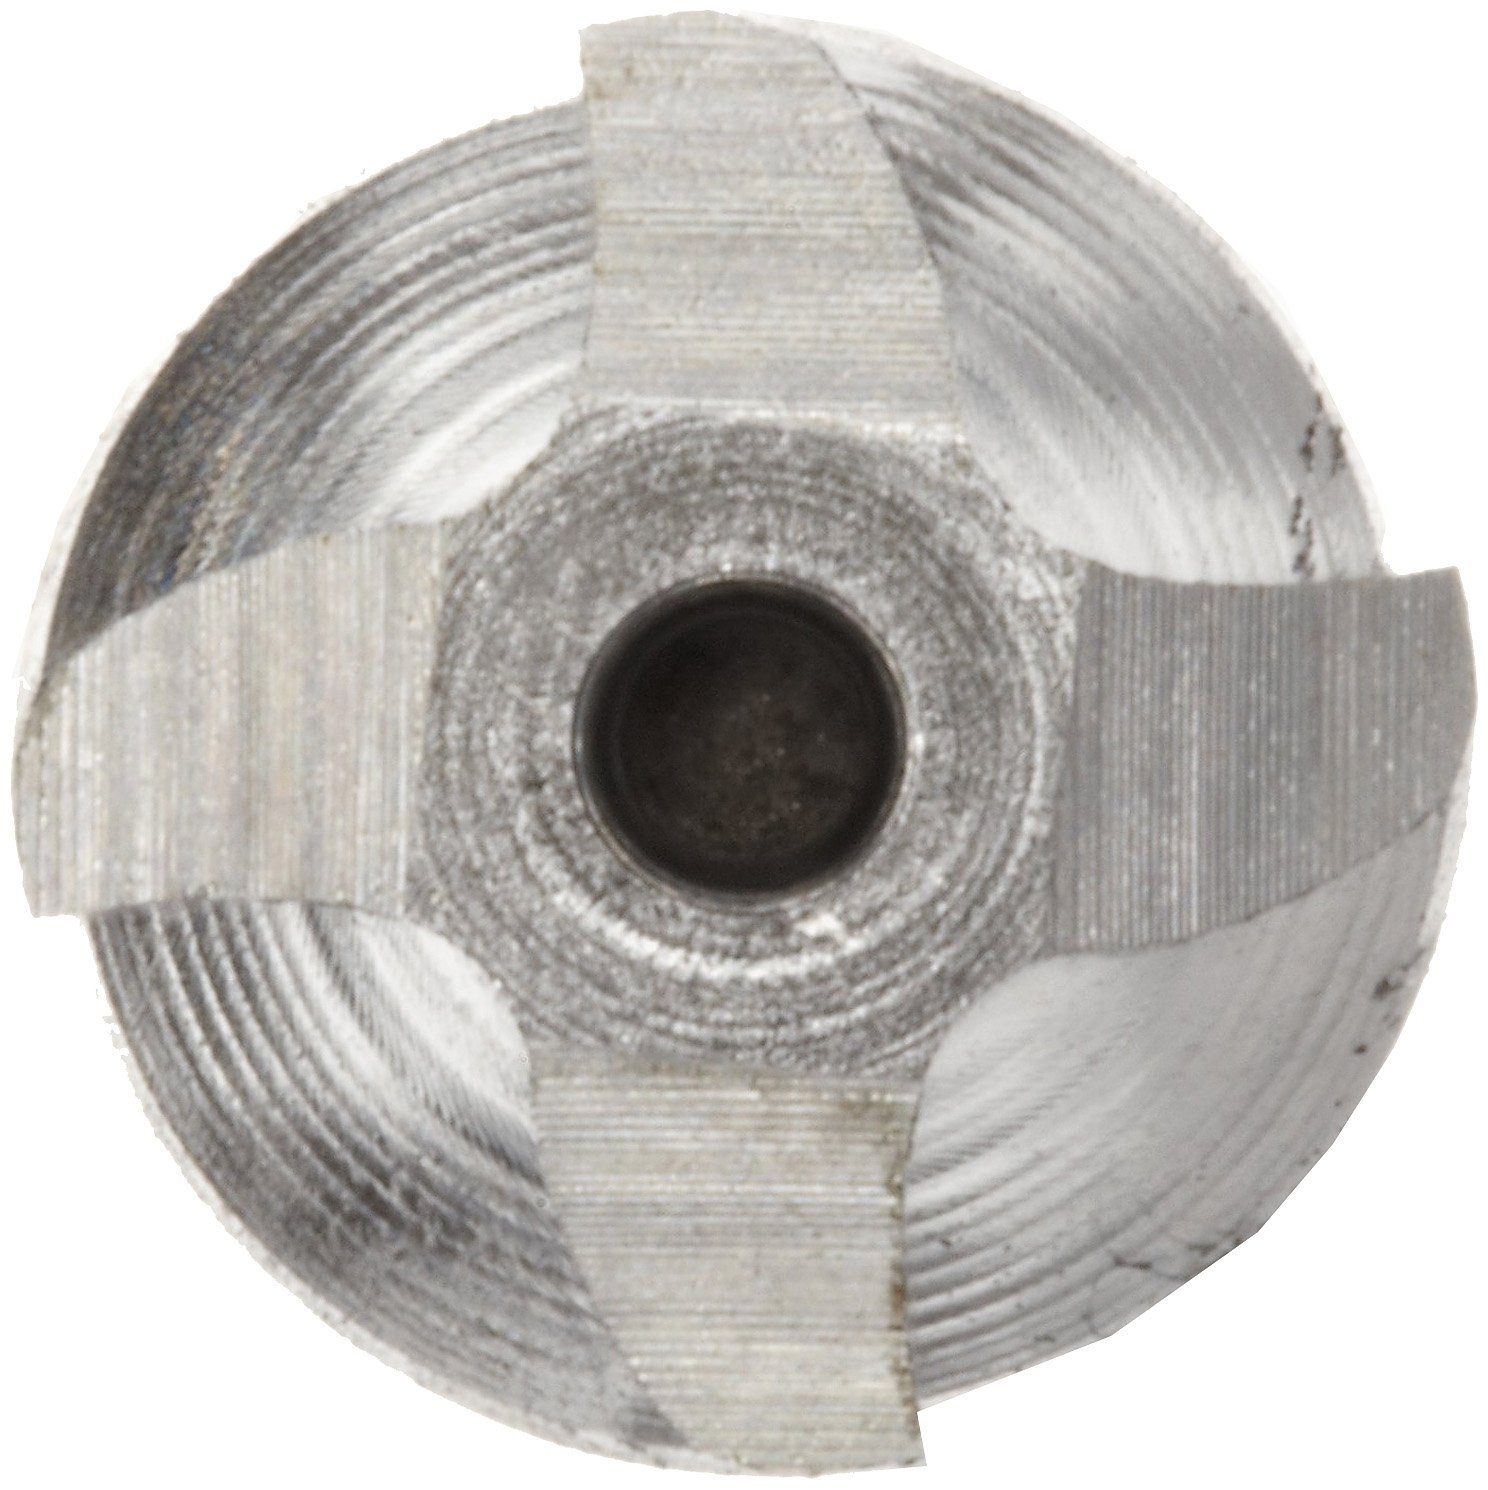 Uncoated Bright Finish Round Shank Alvord Polk 8001 Series High-Speed Steel Core Drill Right Hand Spiral 13//32 Inch Size 47018 4 Flutes